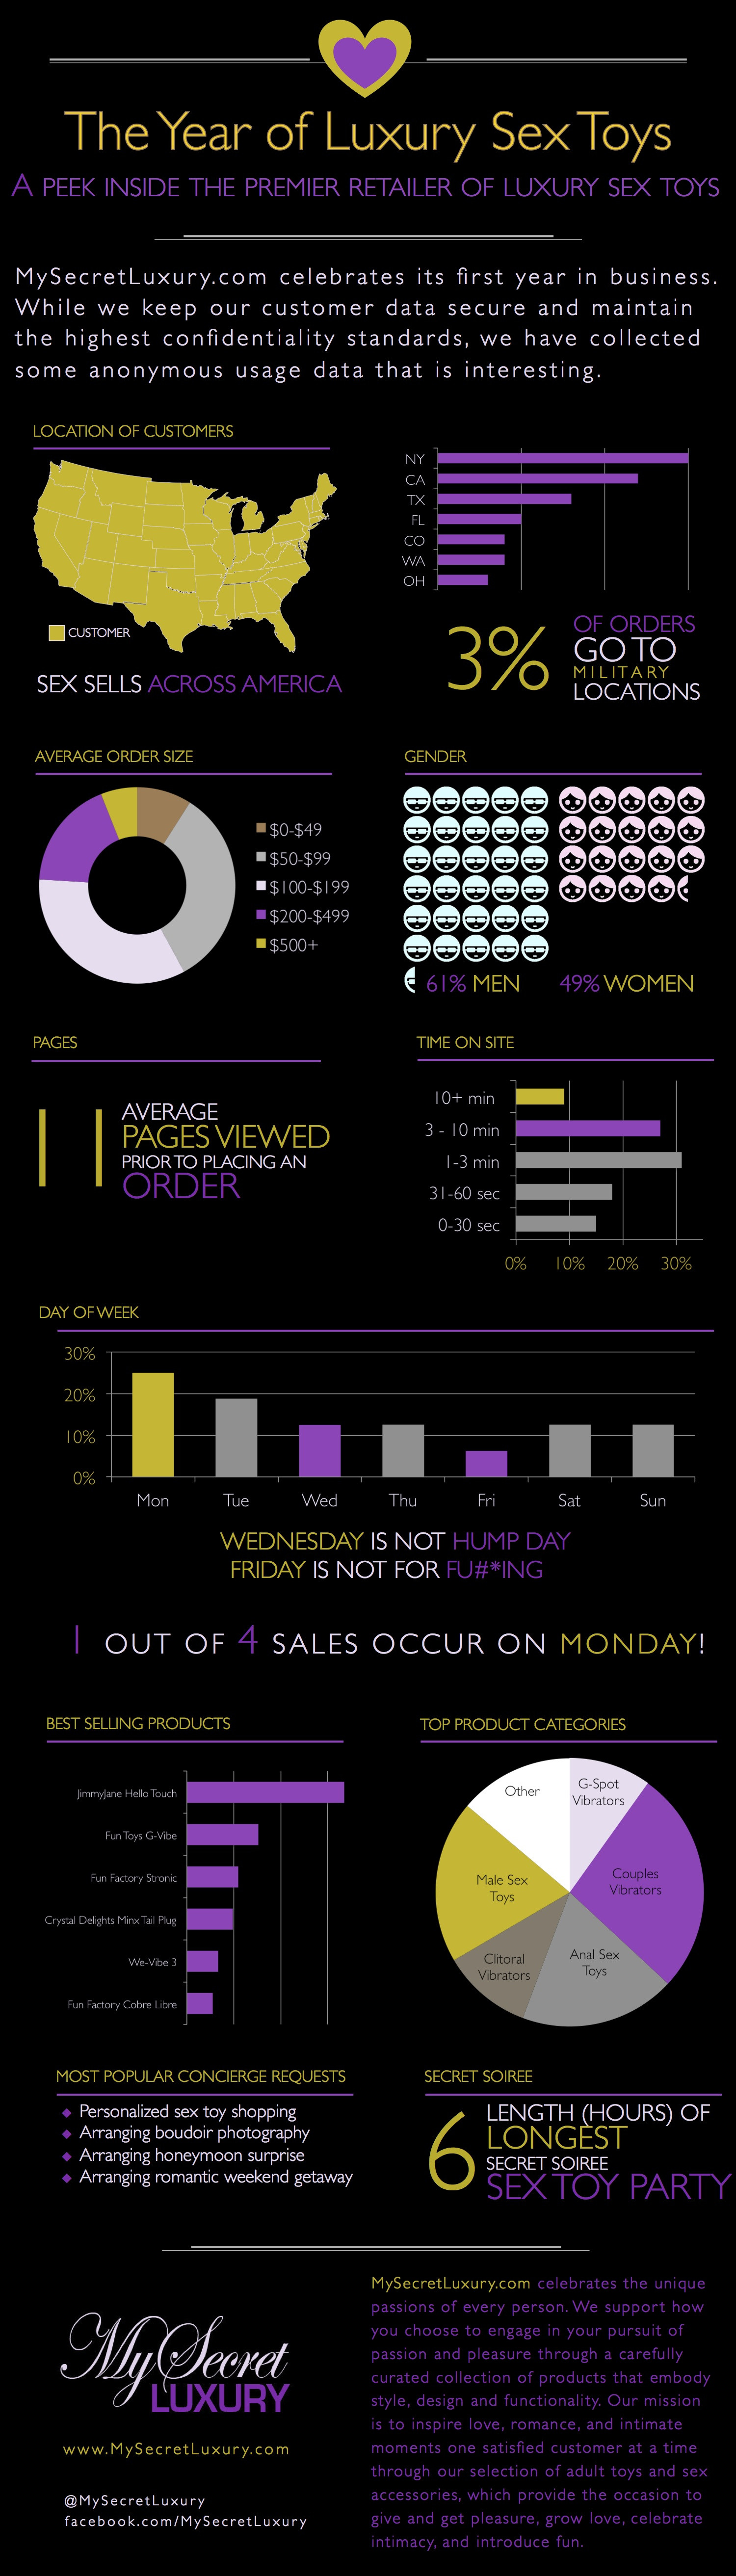 The Year of Luxury Sex Toys Infographic